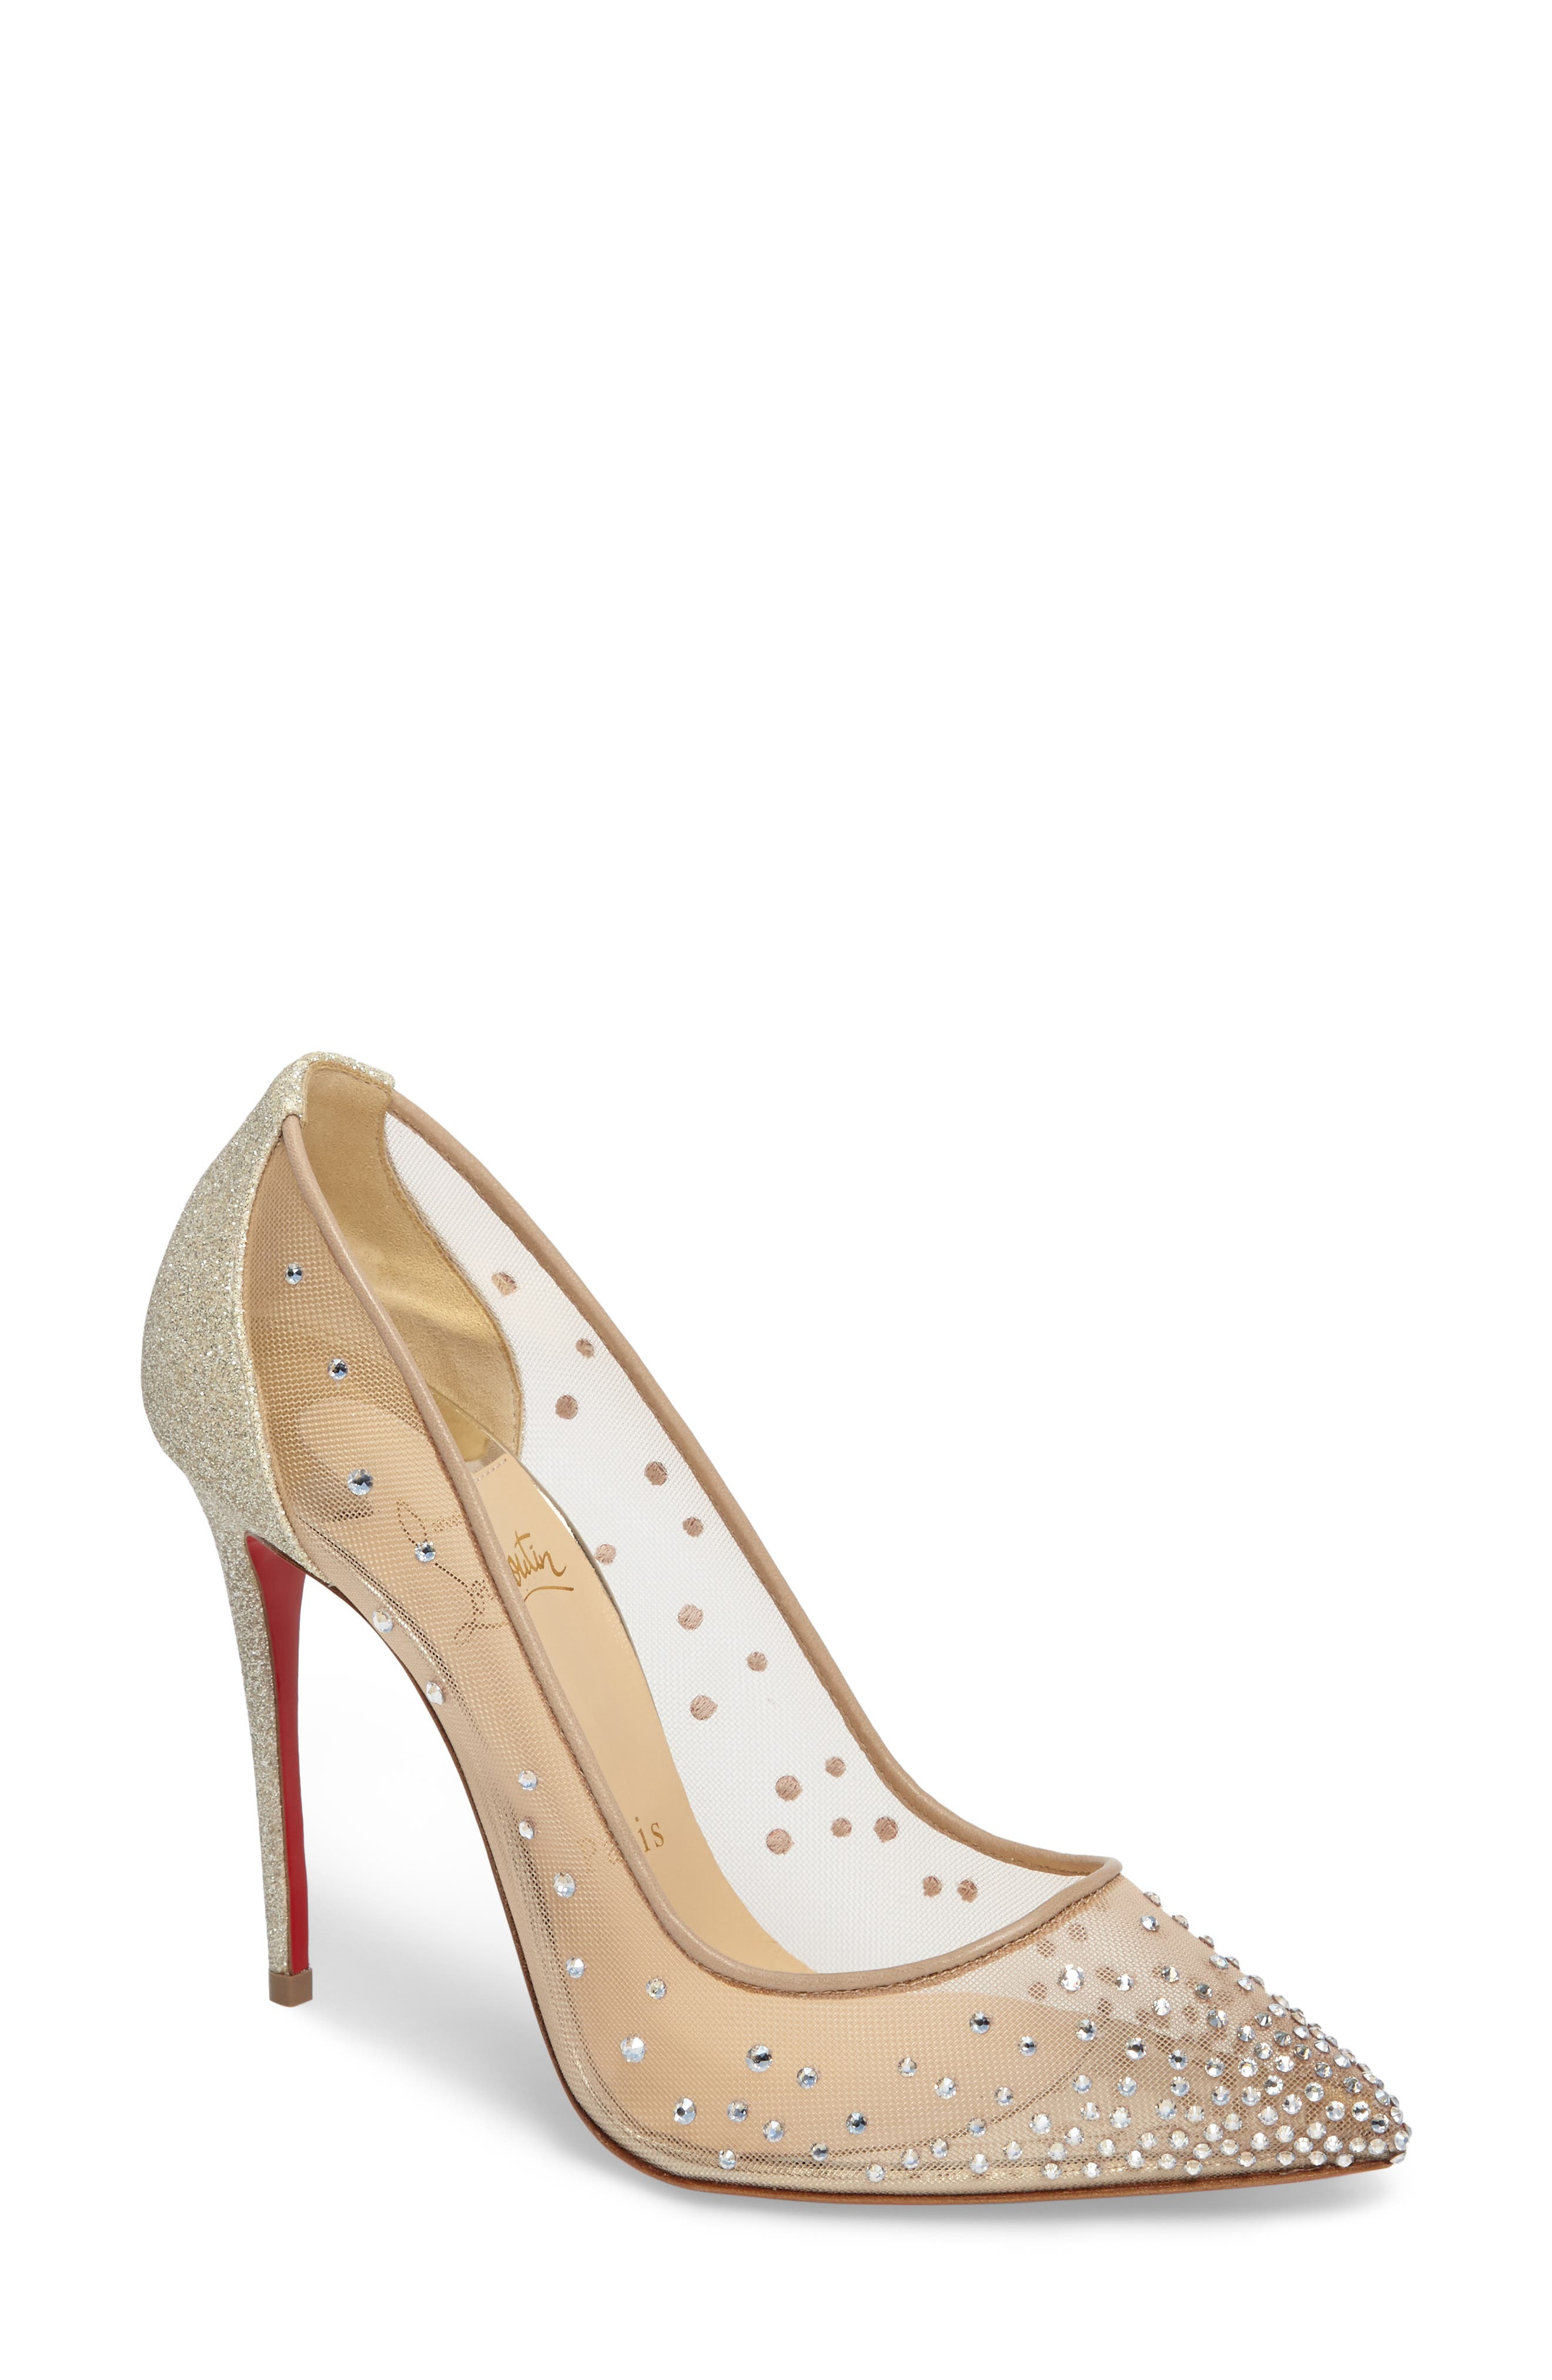 Christian Louboutin Follies Strass Pump (Women)